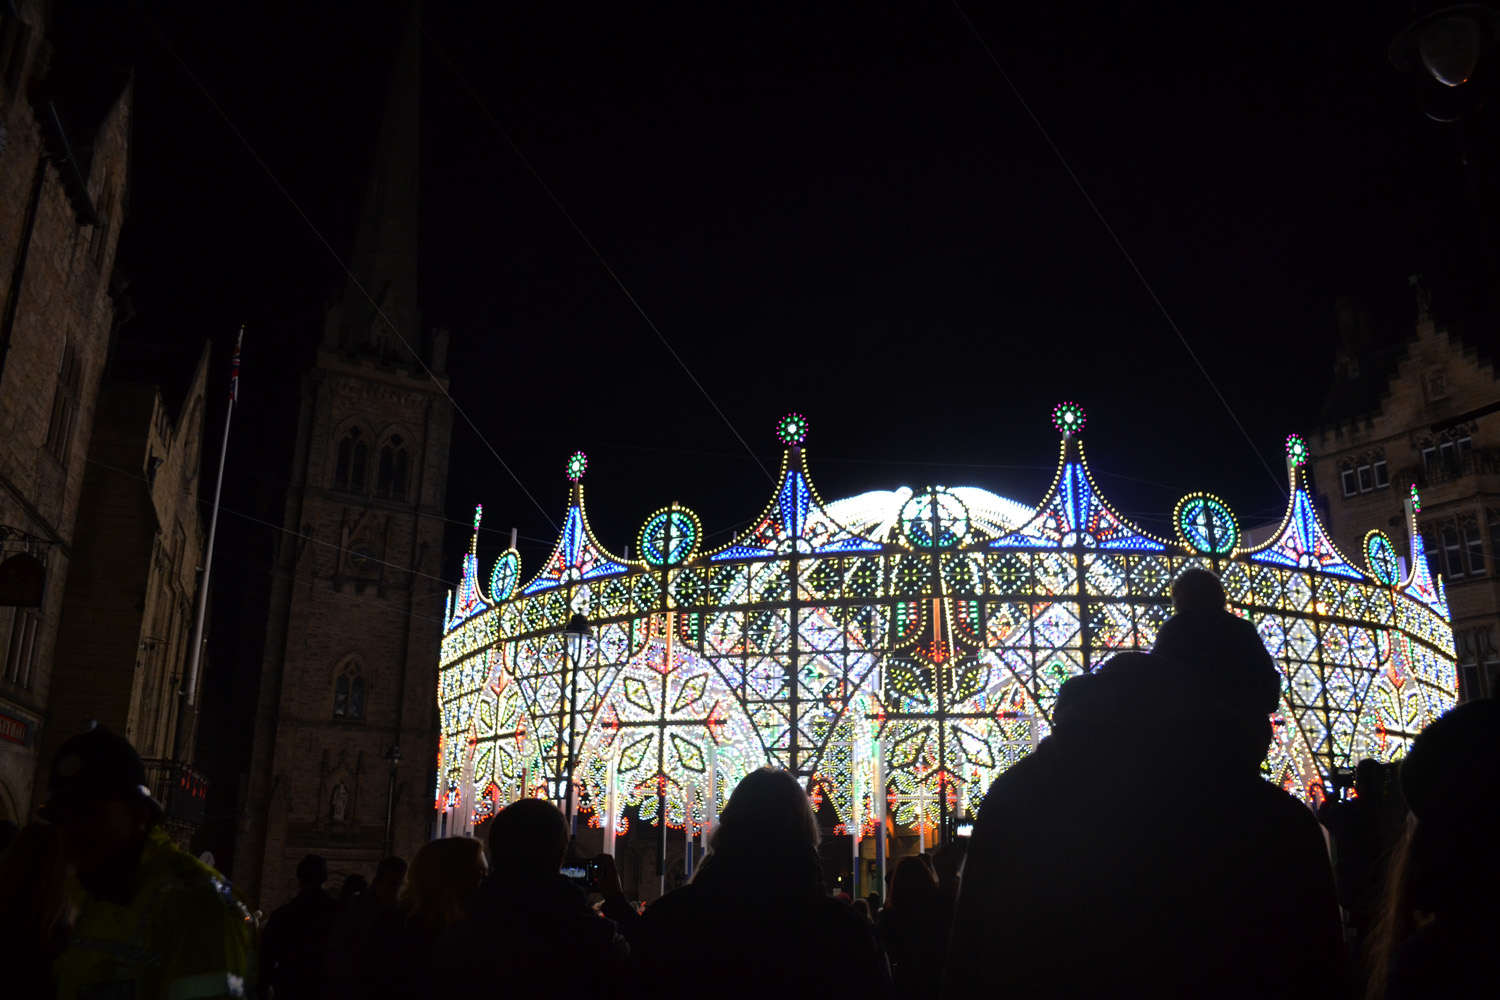 Dome and Arches Lumiere